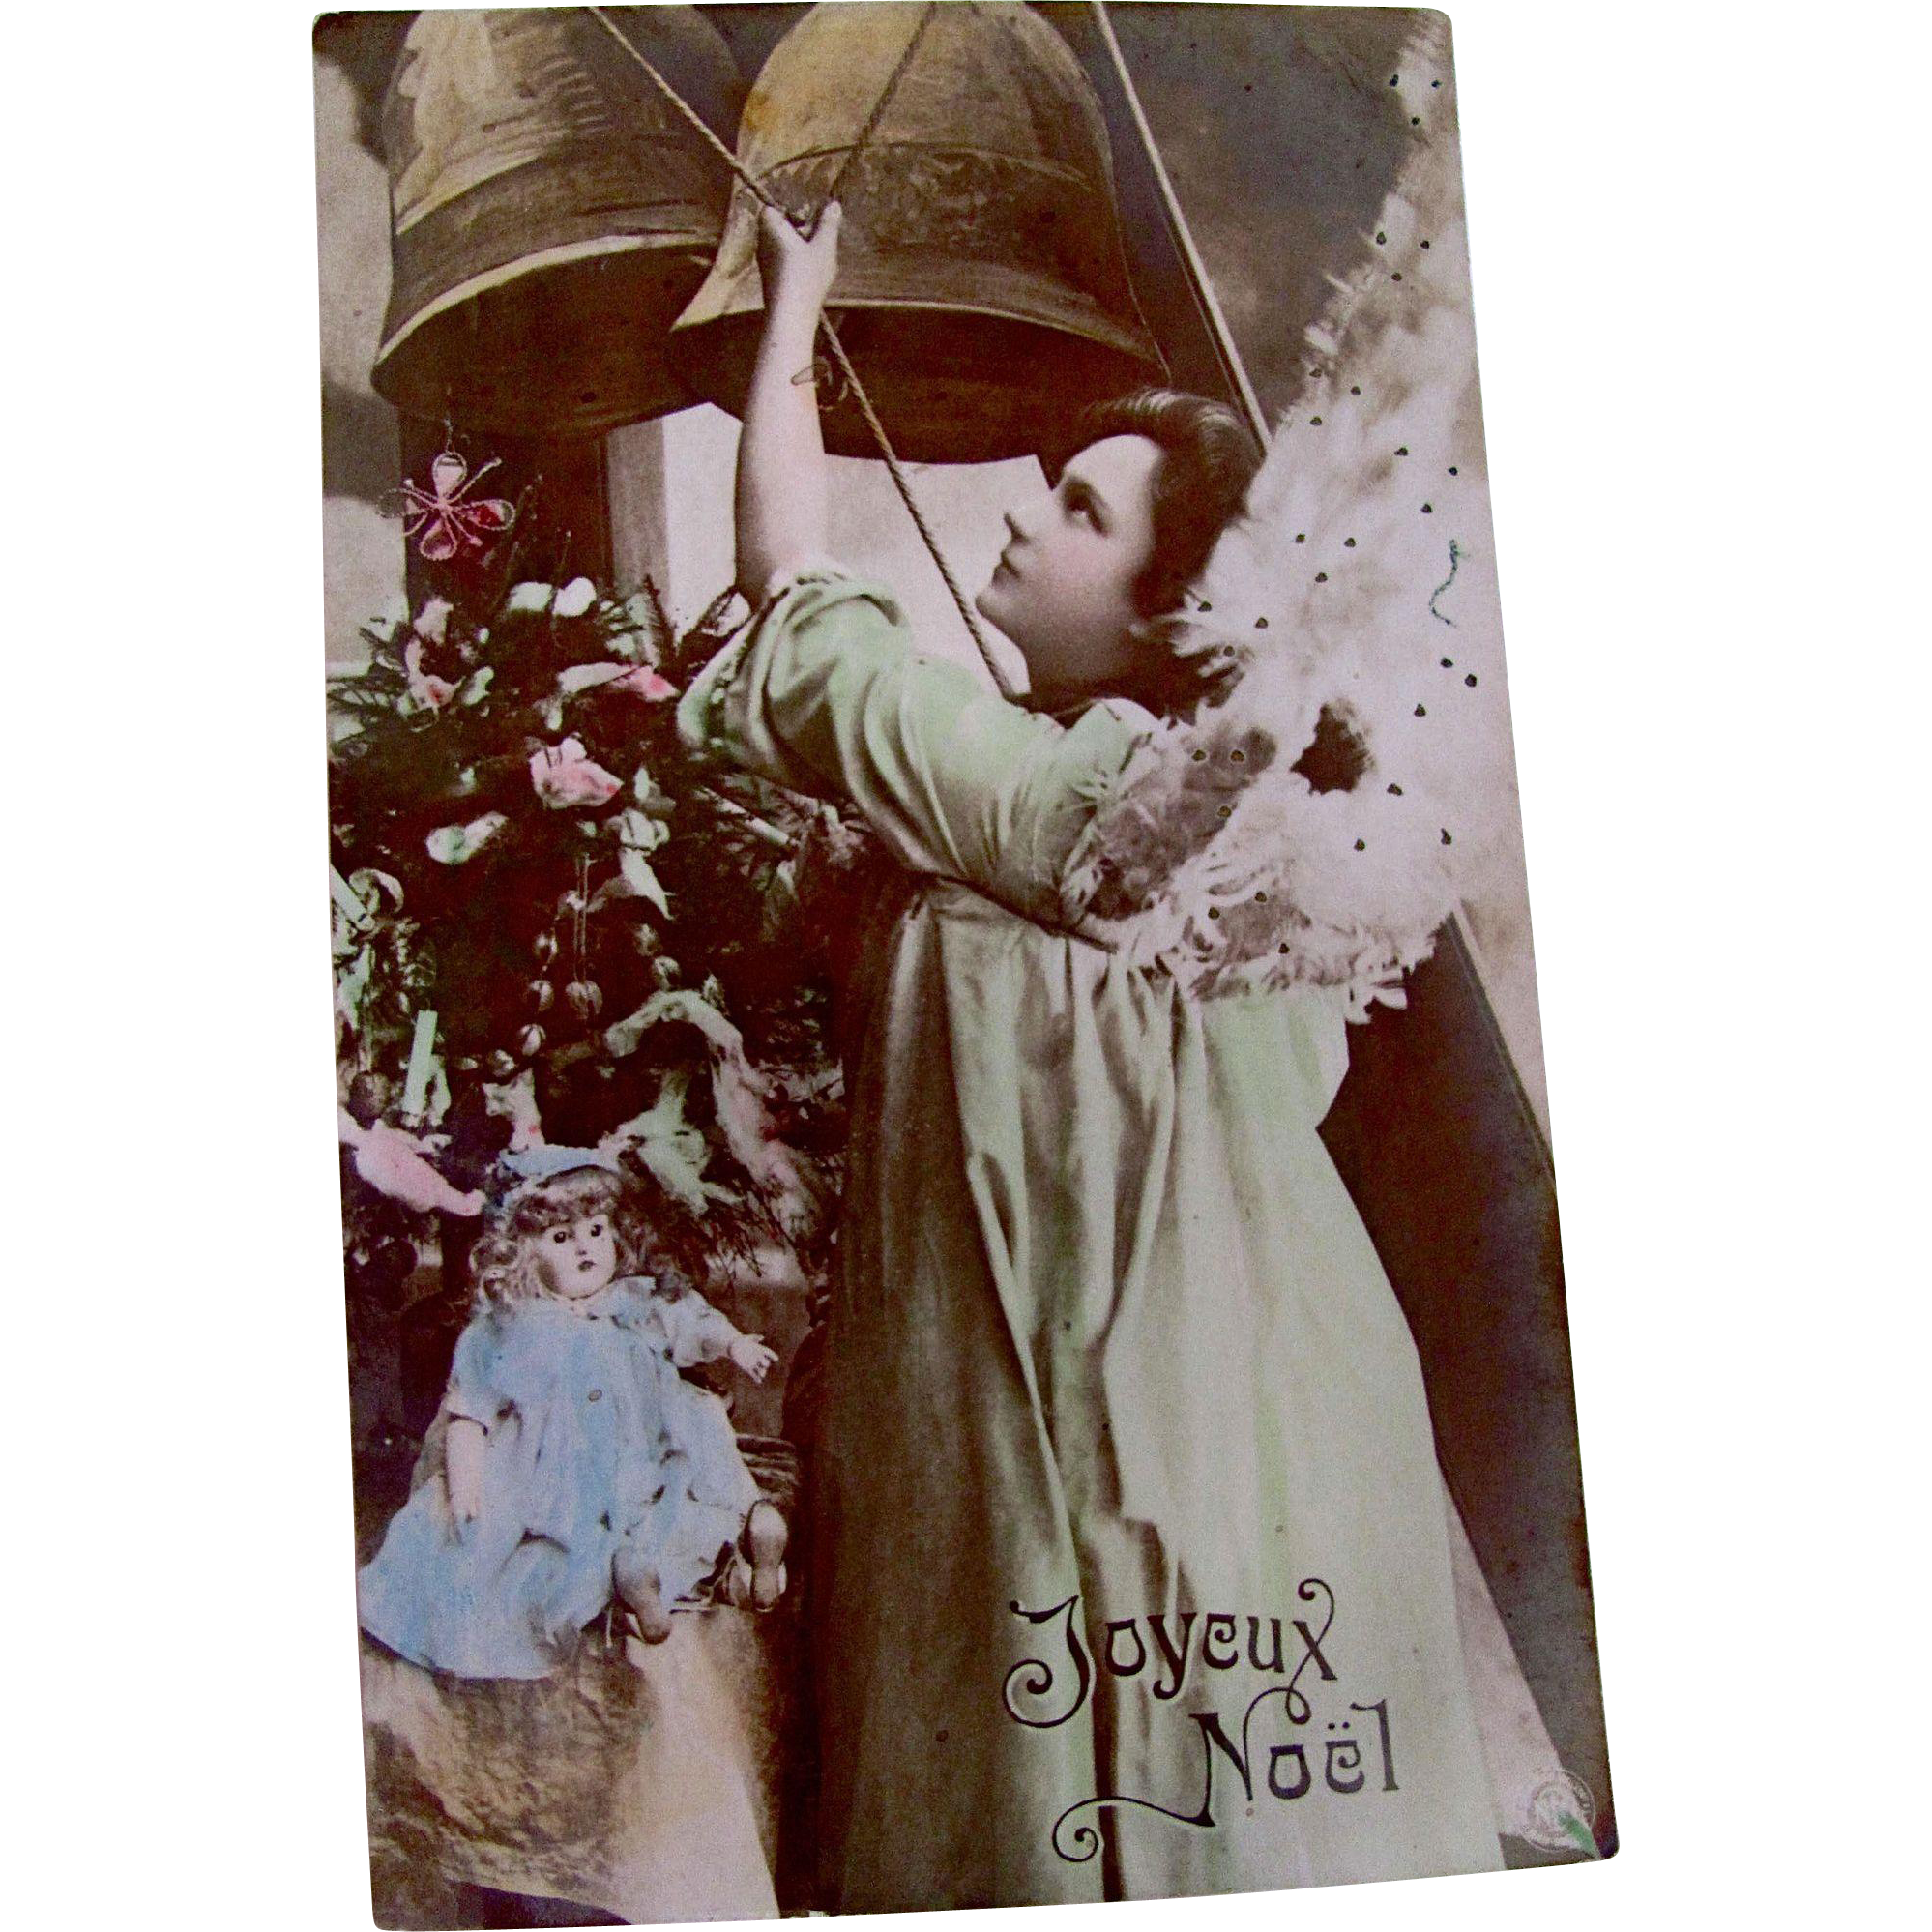 Hand Tinted Glossy Real Photo Post Card, Green Angel, Doll, Bells, Christmas Tree, Joyeux Noel, Divided Back, Circa 1904